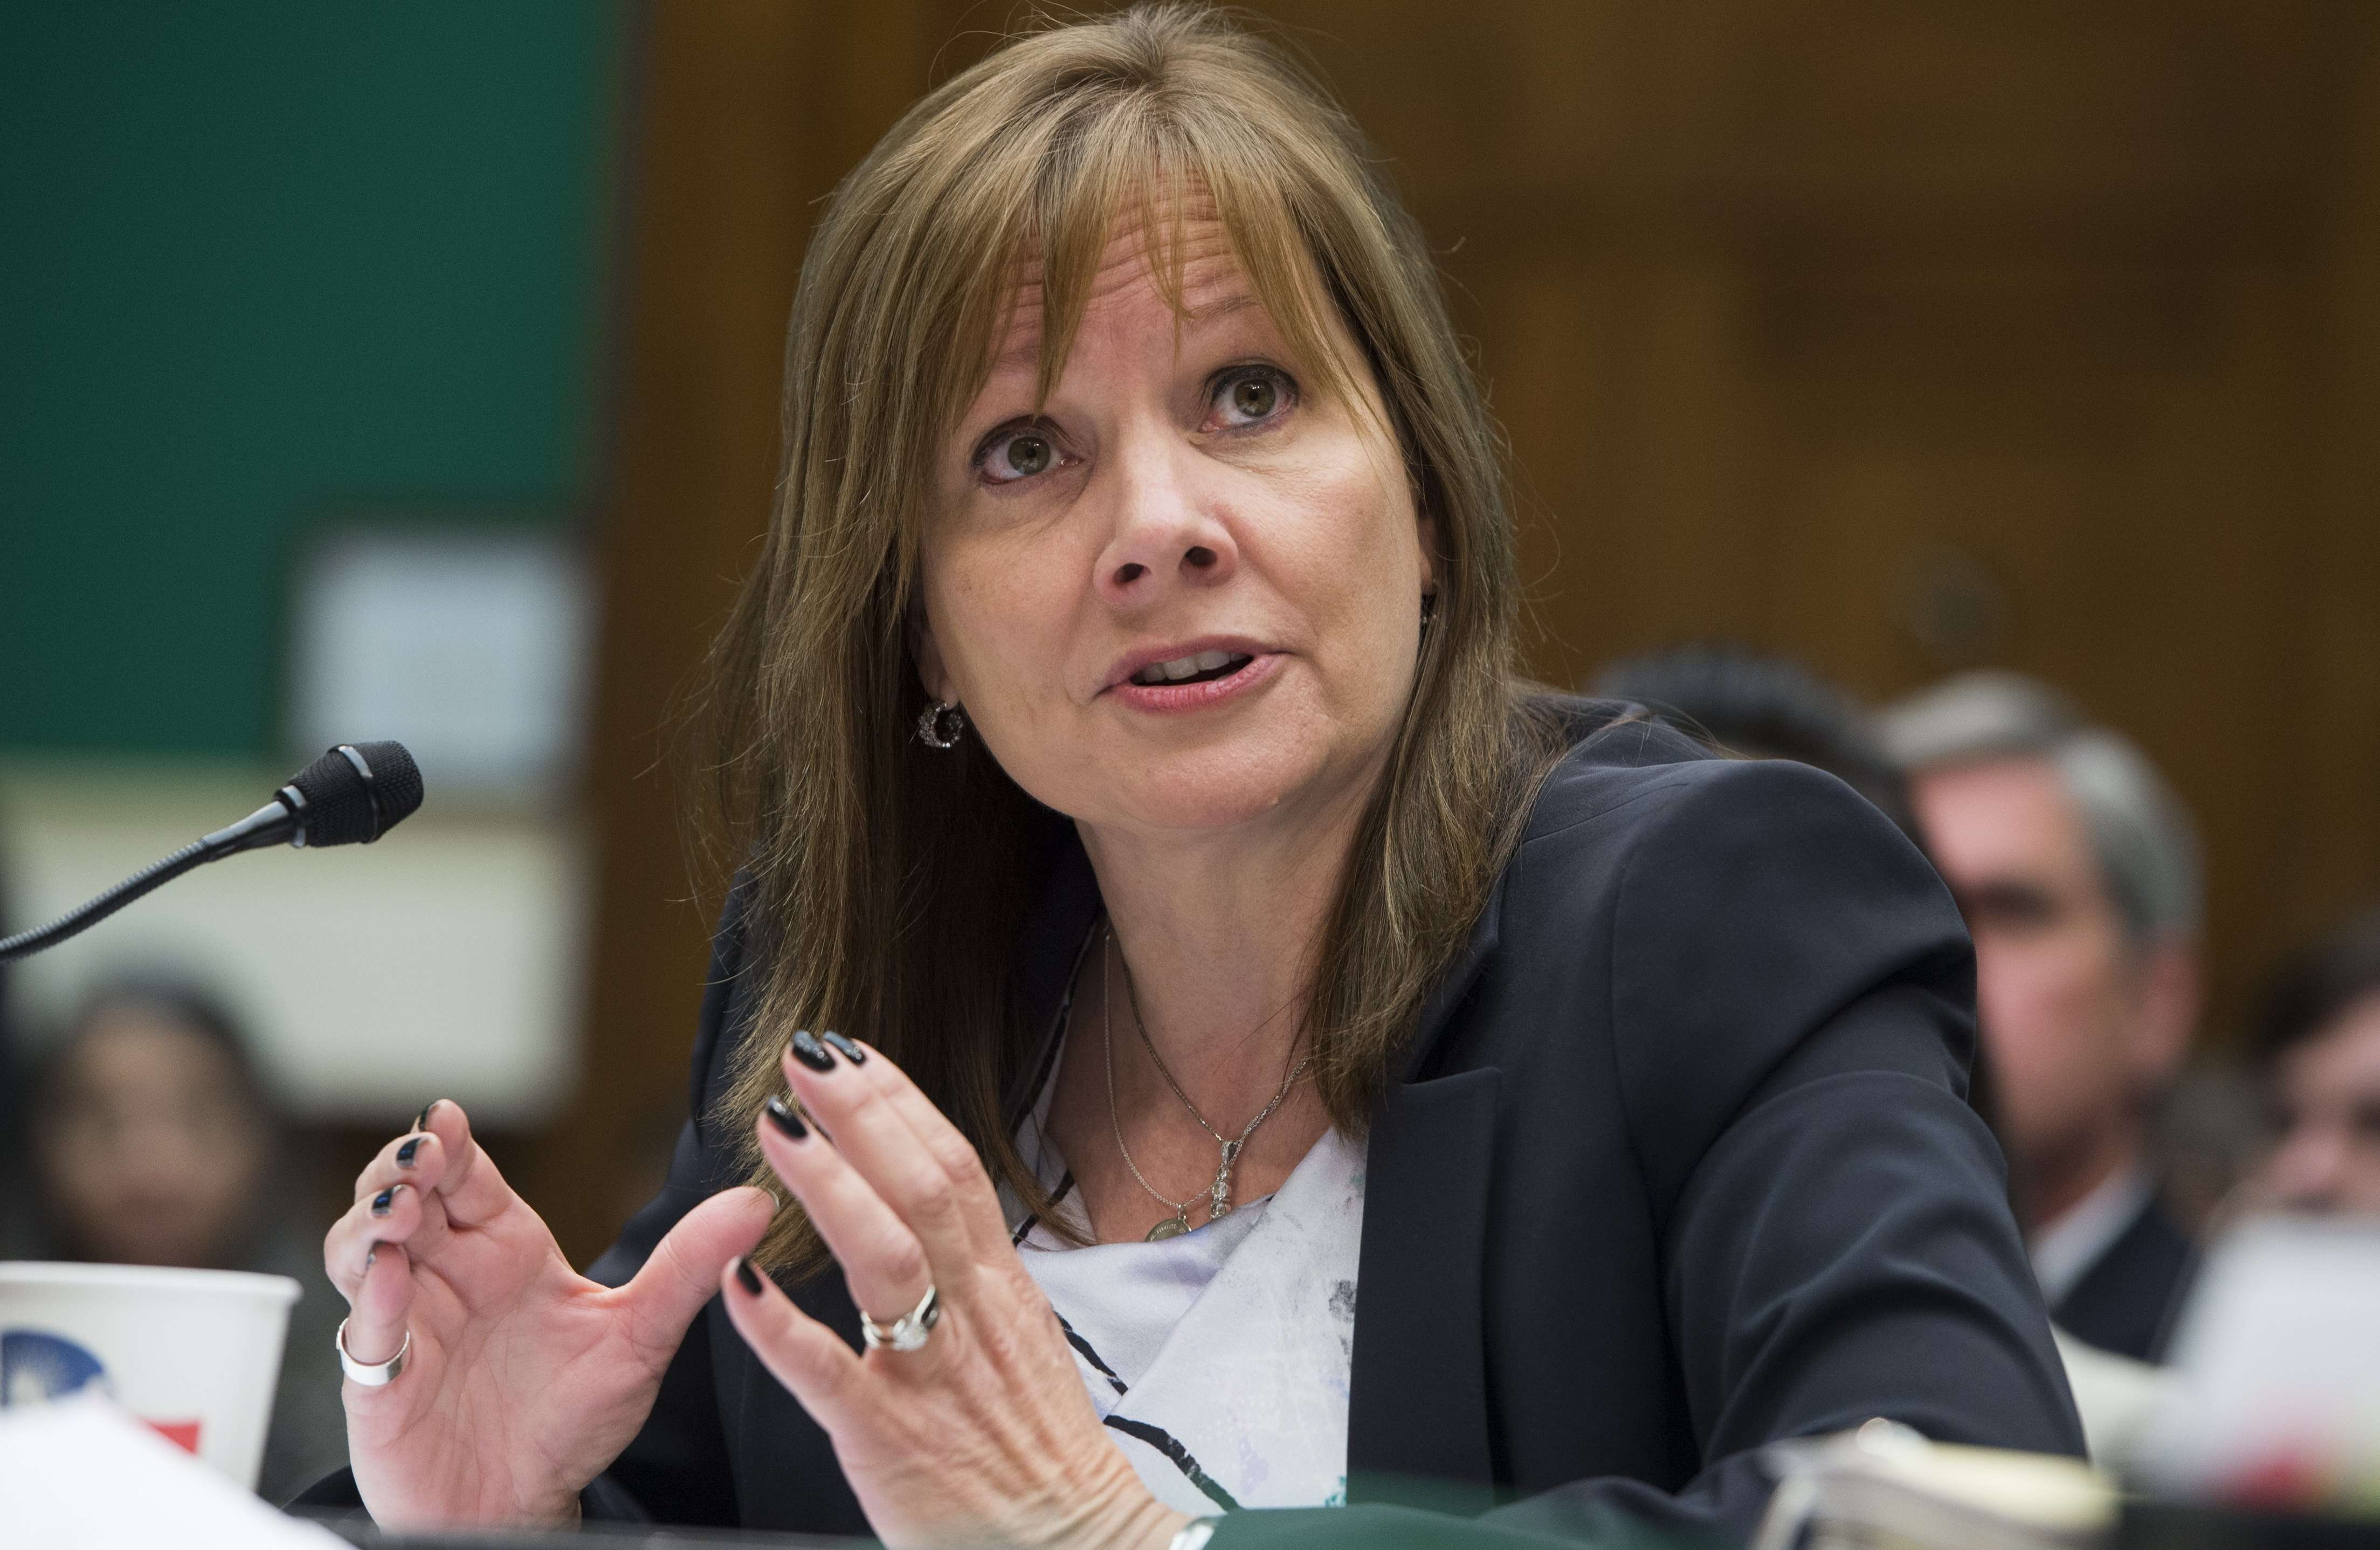 General Motors CEO Mary Barra testifies on the GM ignition switch recall during a US House Oversight and Investigations Subcommittee hearing on Capitol Hill in Washington, DC, on June 18, 2014.